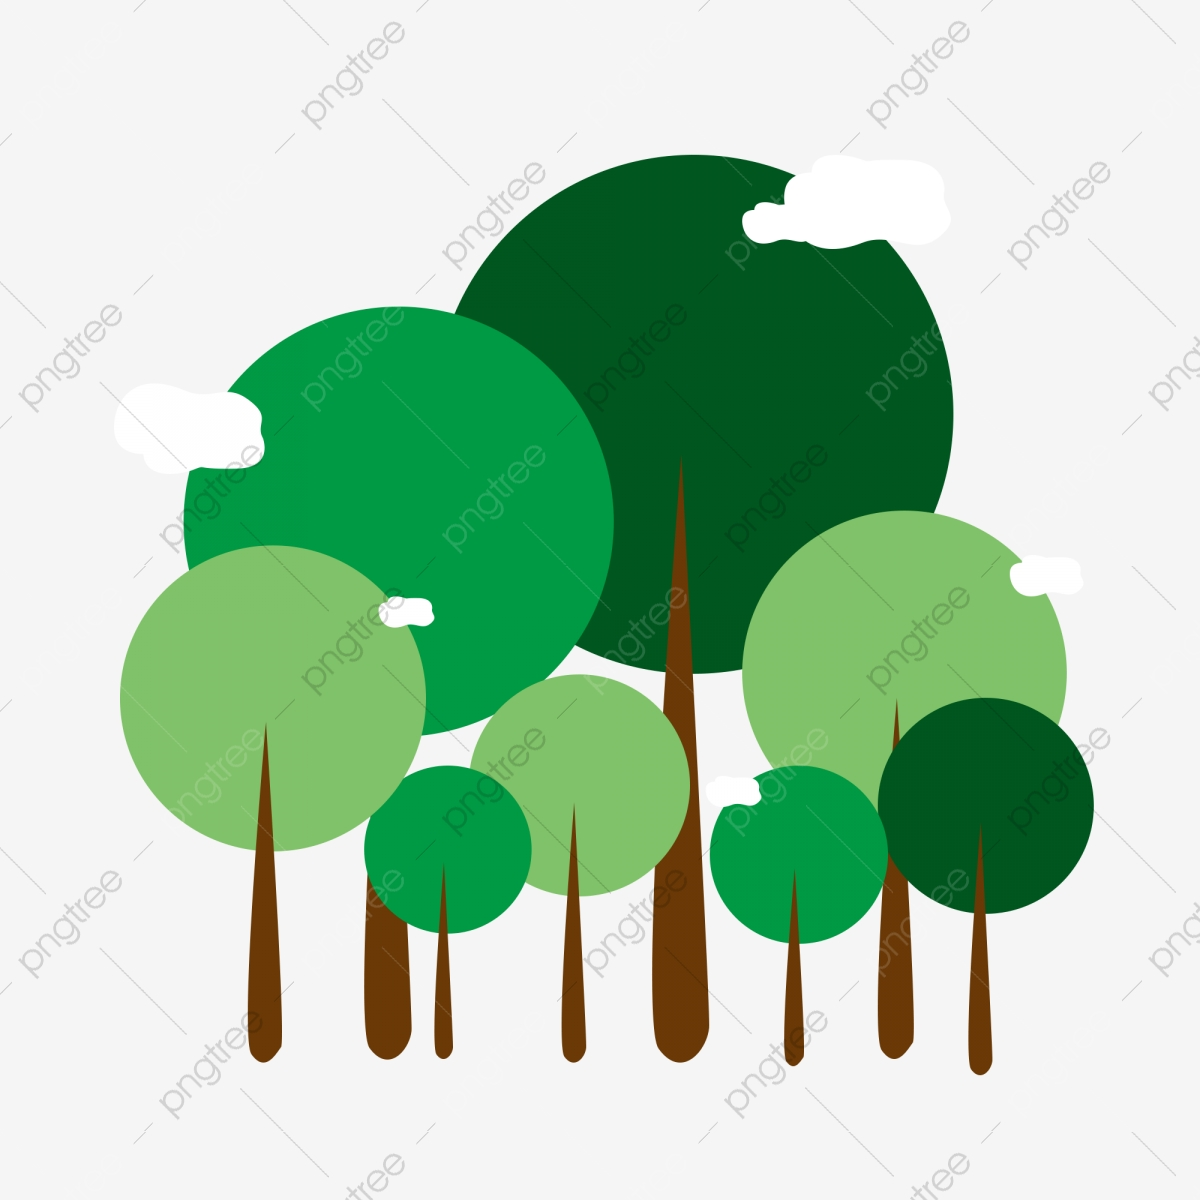 Clipart forest simple. Green white clouds arbor